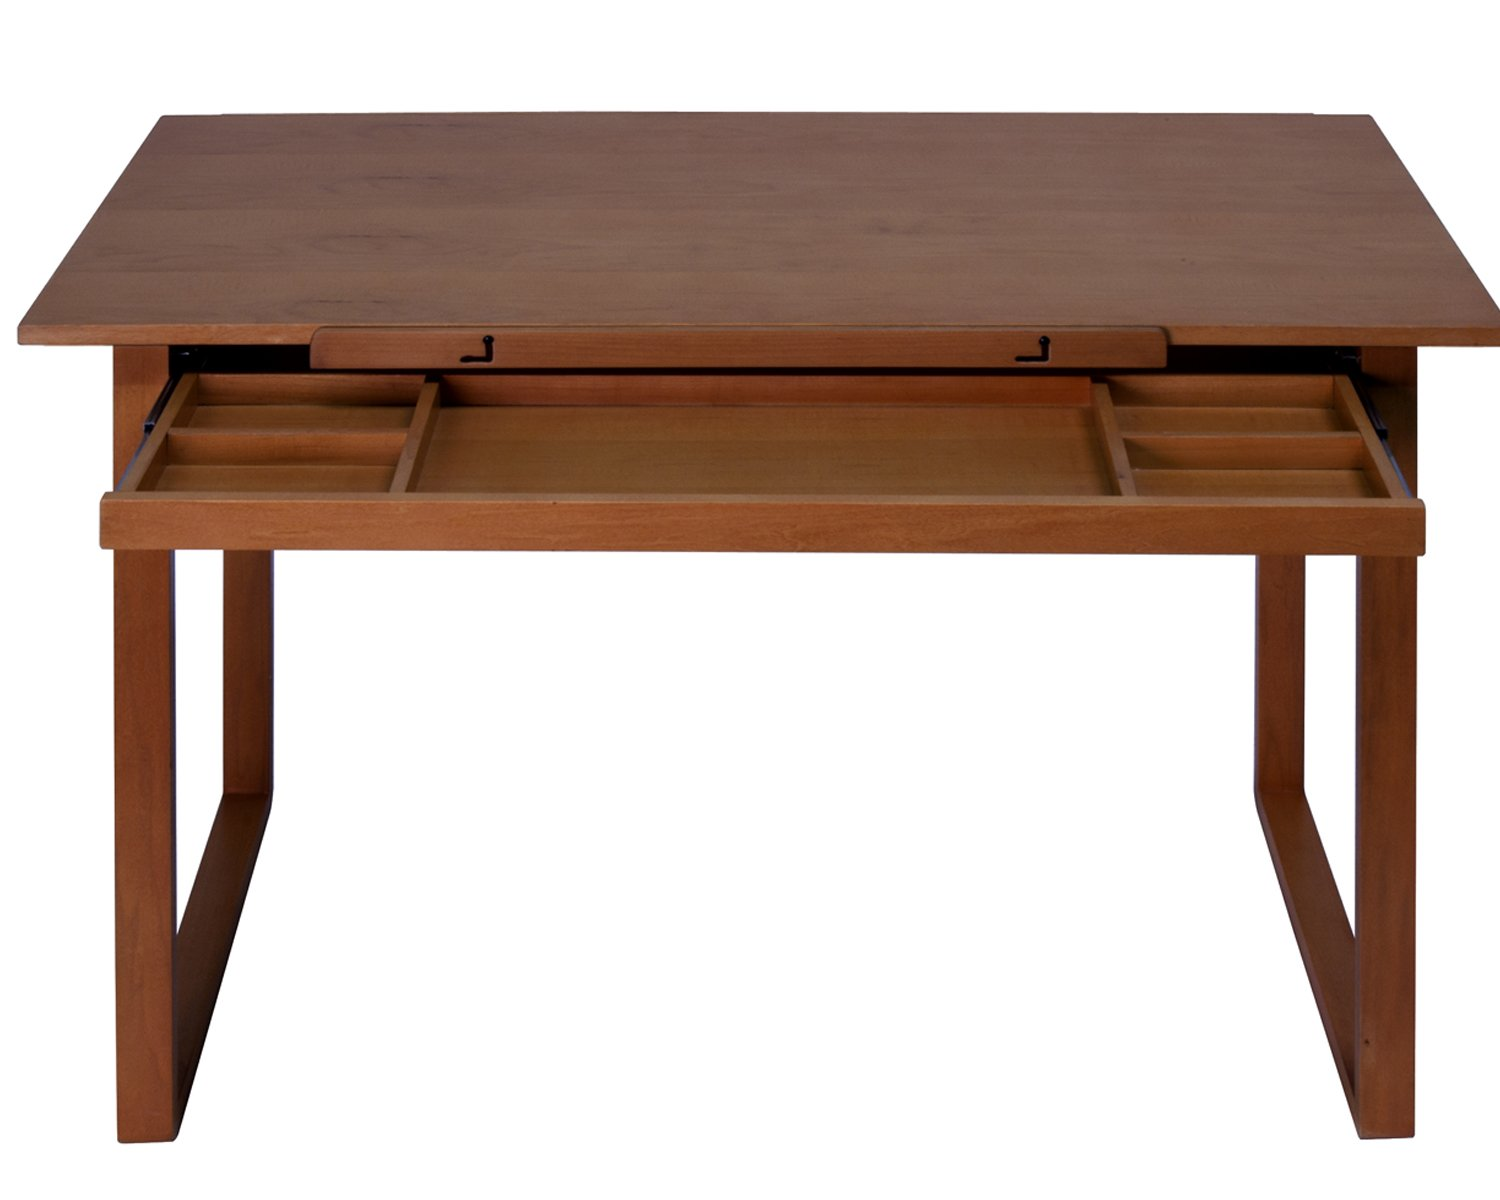 Offex Ponderosa Wood Topped Table/Sonoma, Brown